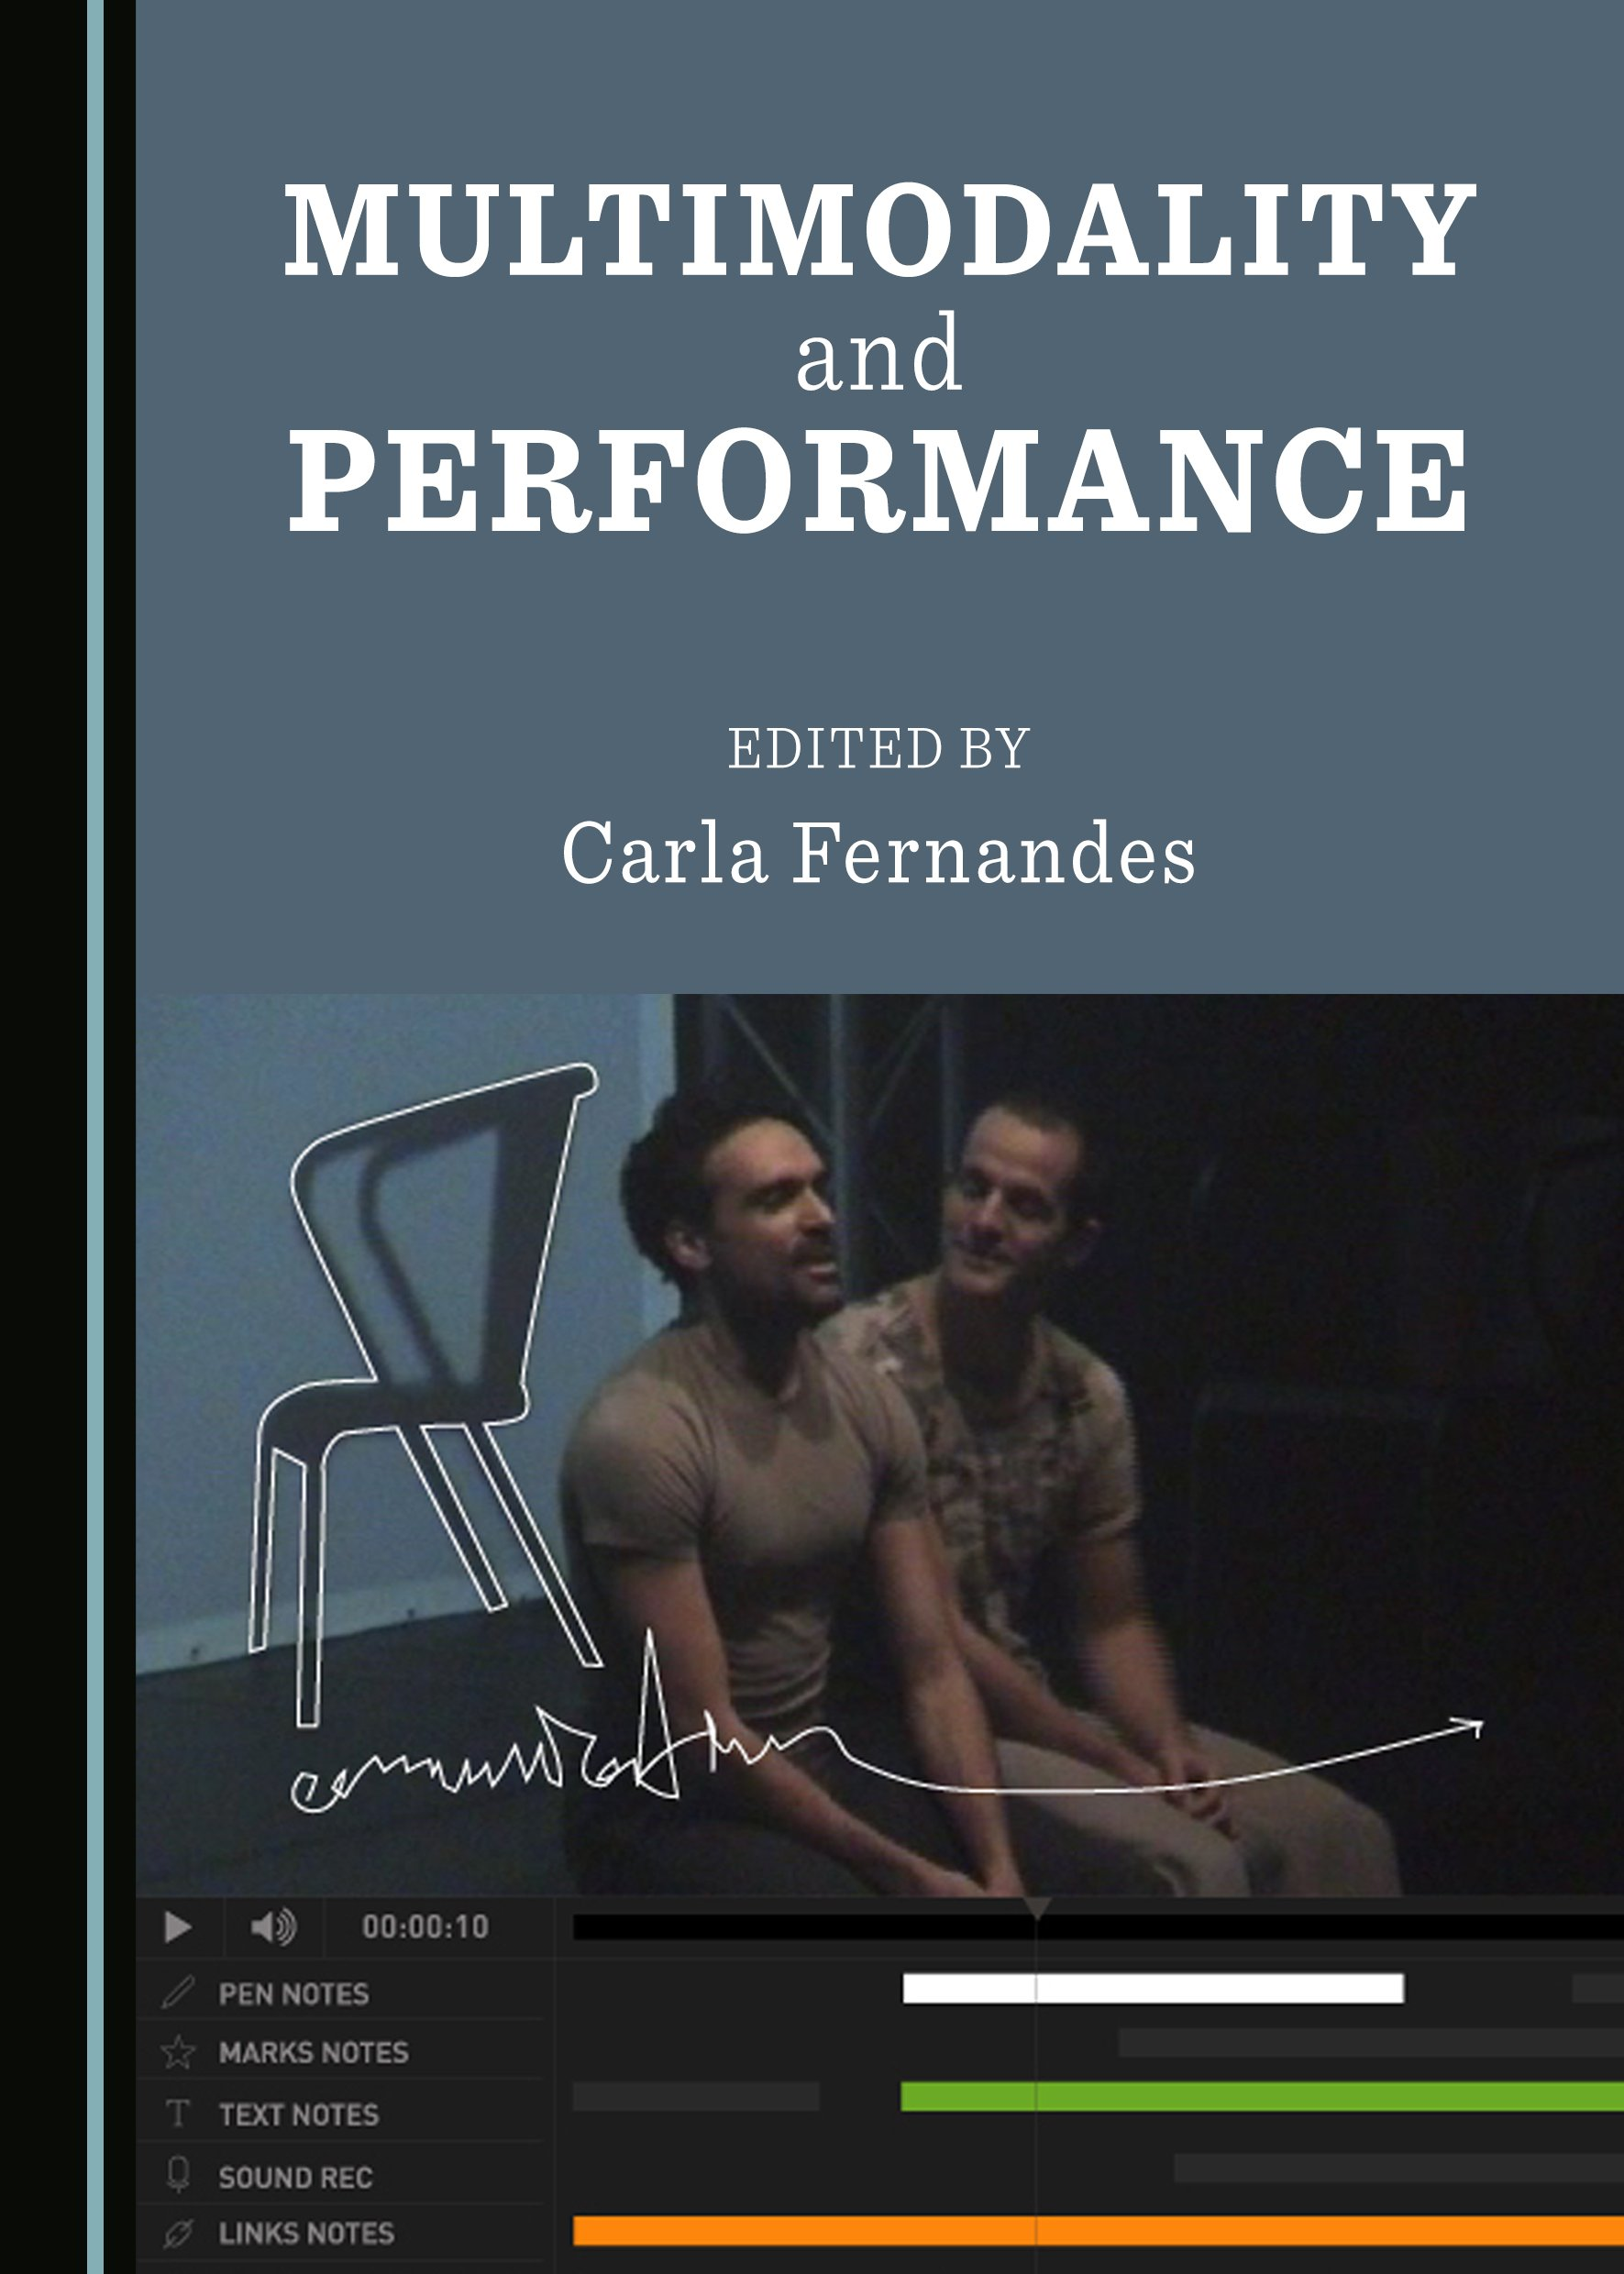 Multimodality and Performance